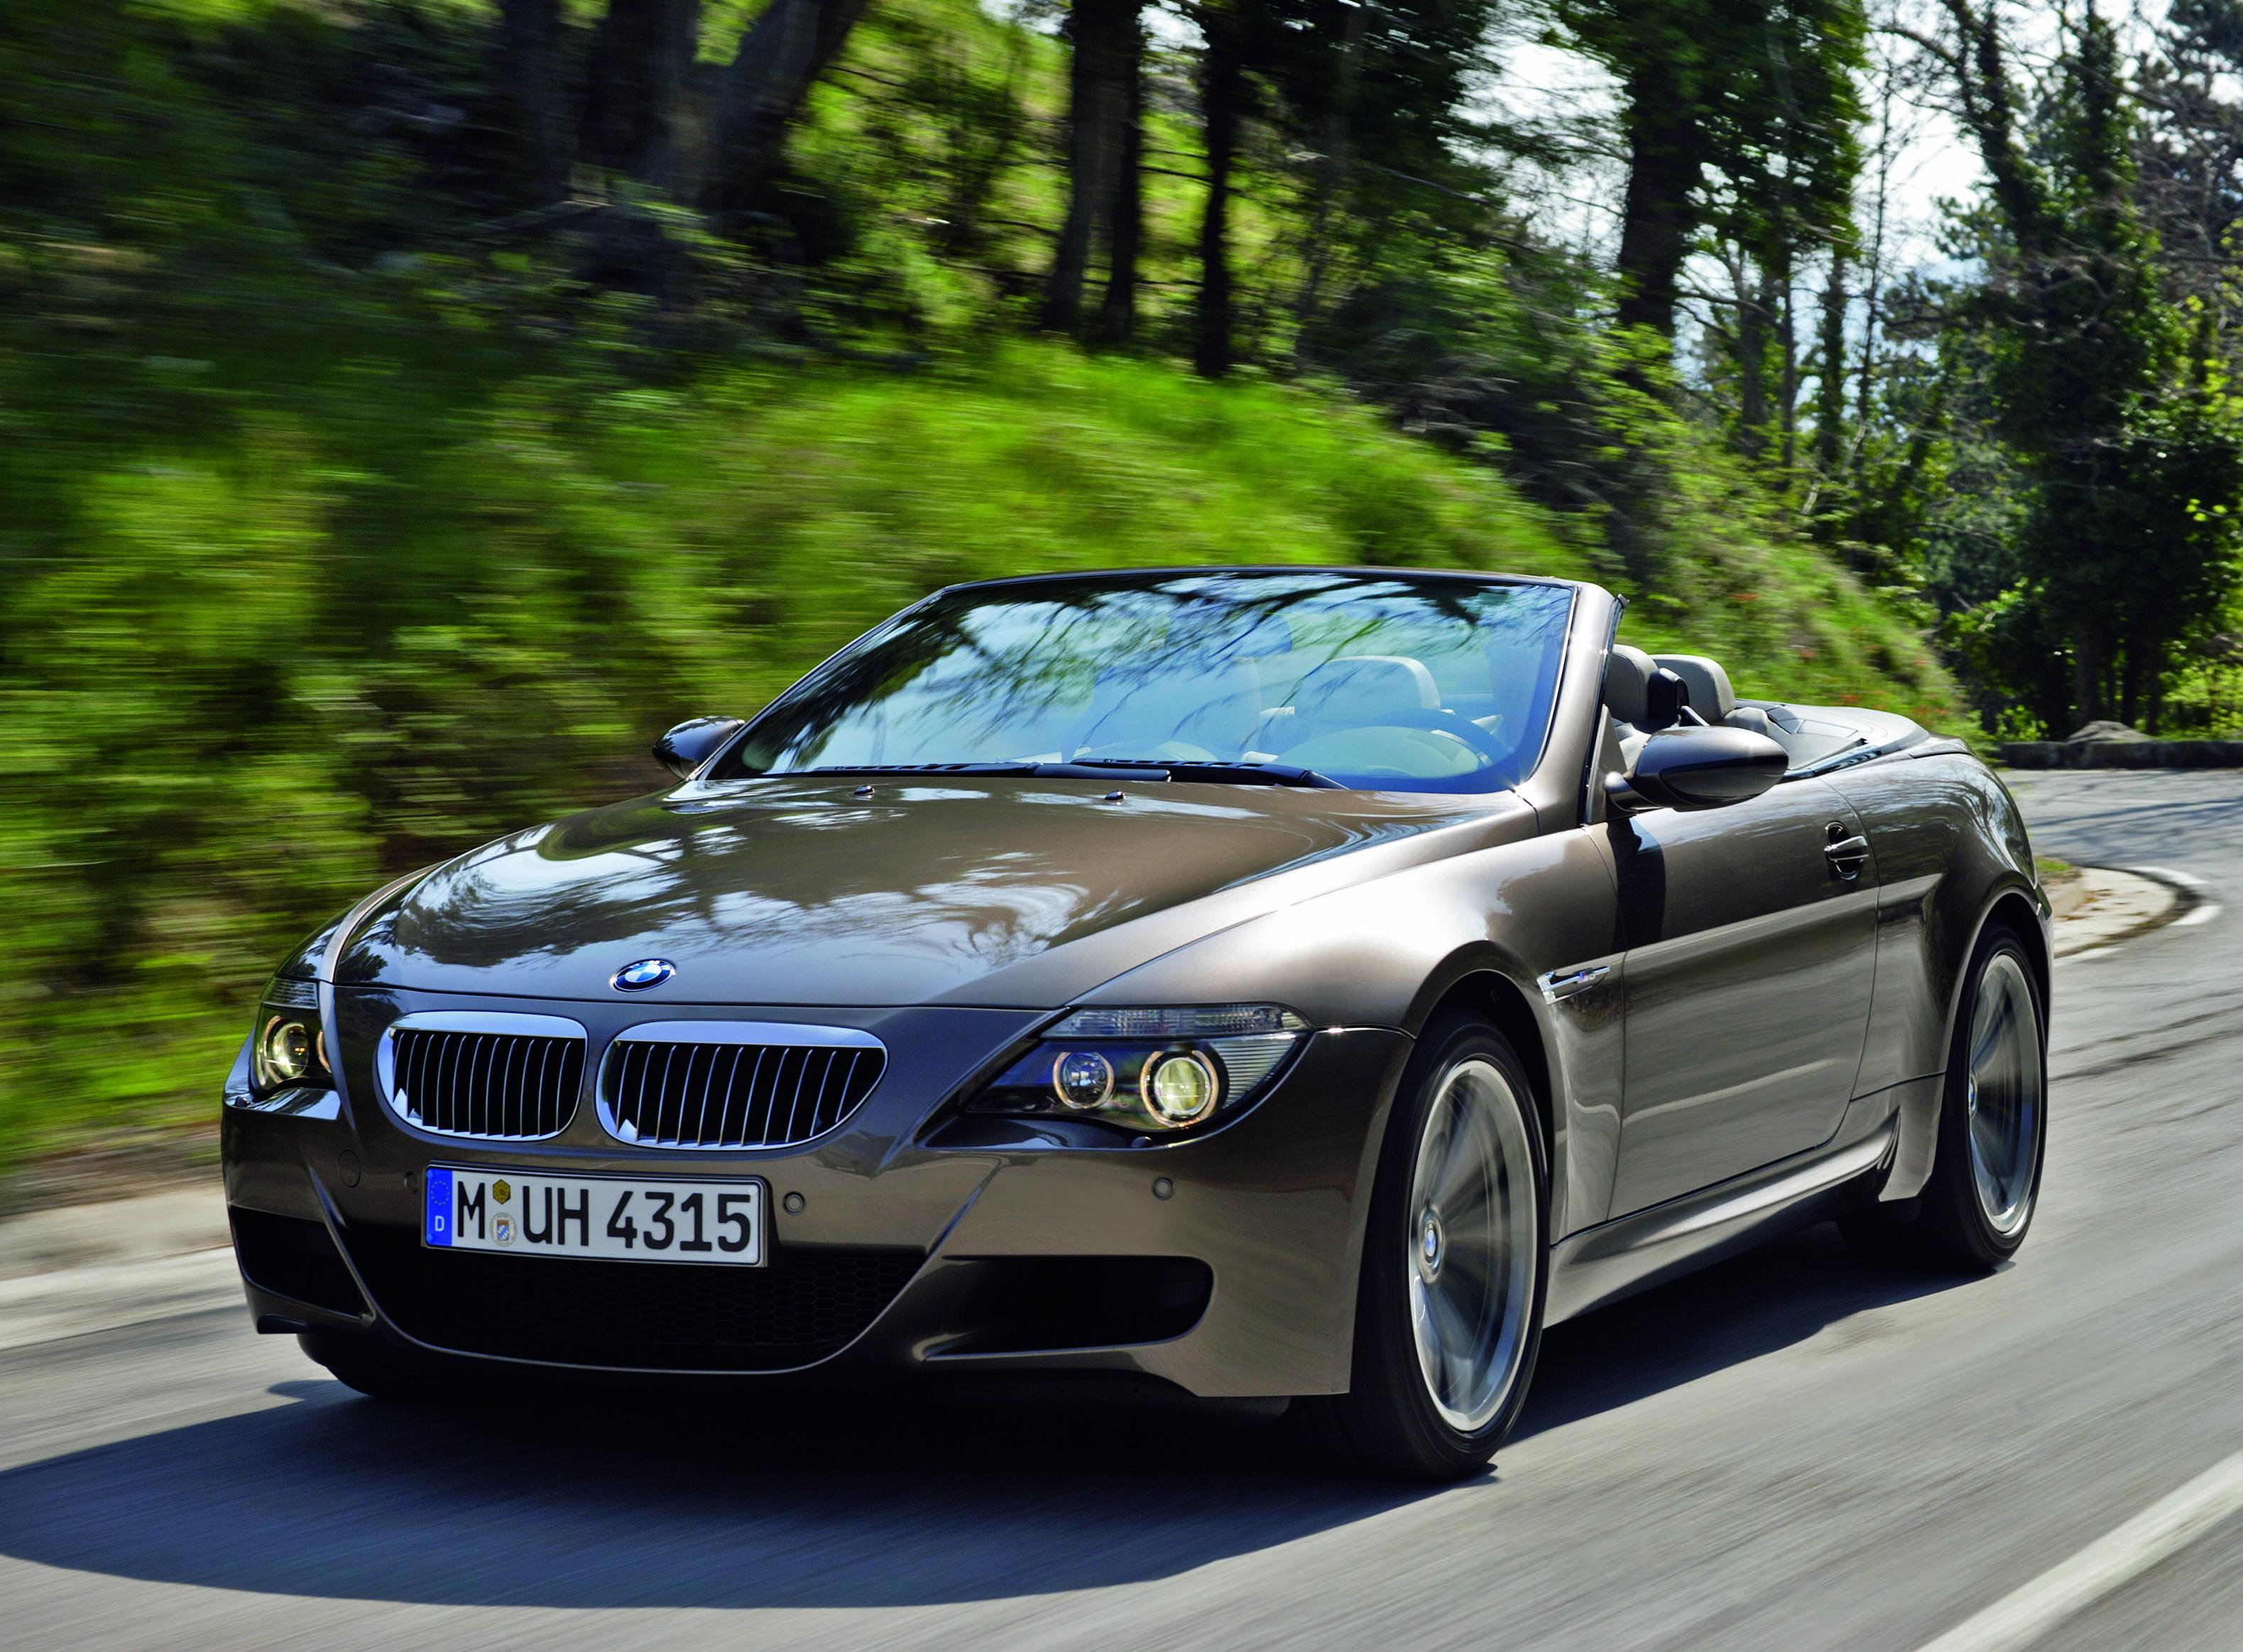 used car the of awards bmw what convertible present year audi best cabriolet